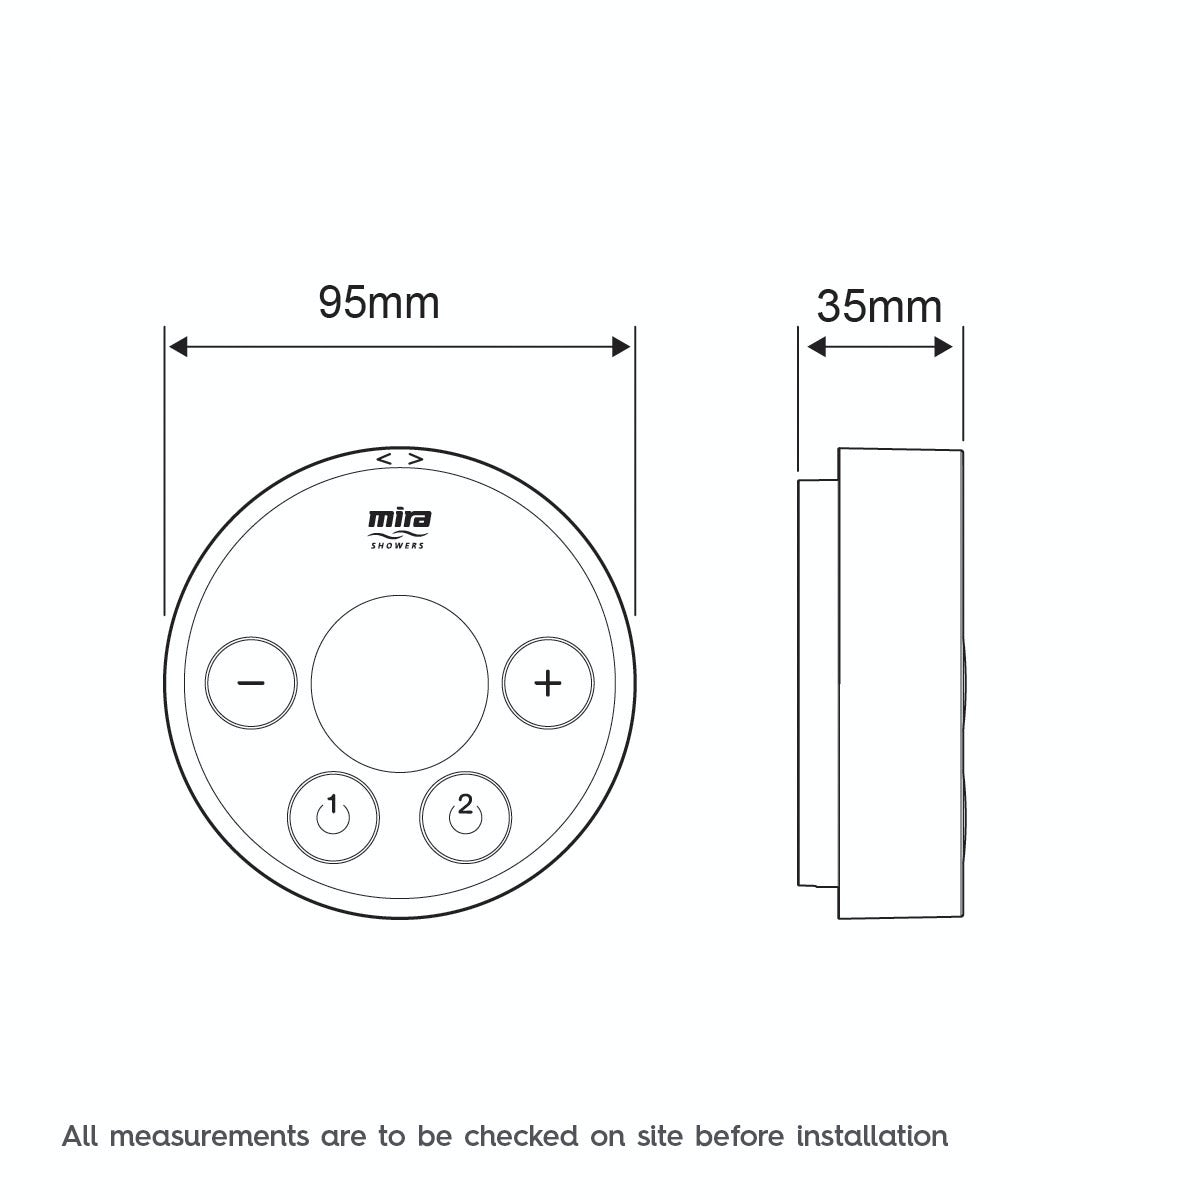 Dimensions for Mira Platinum dual wireless digital shower controller